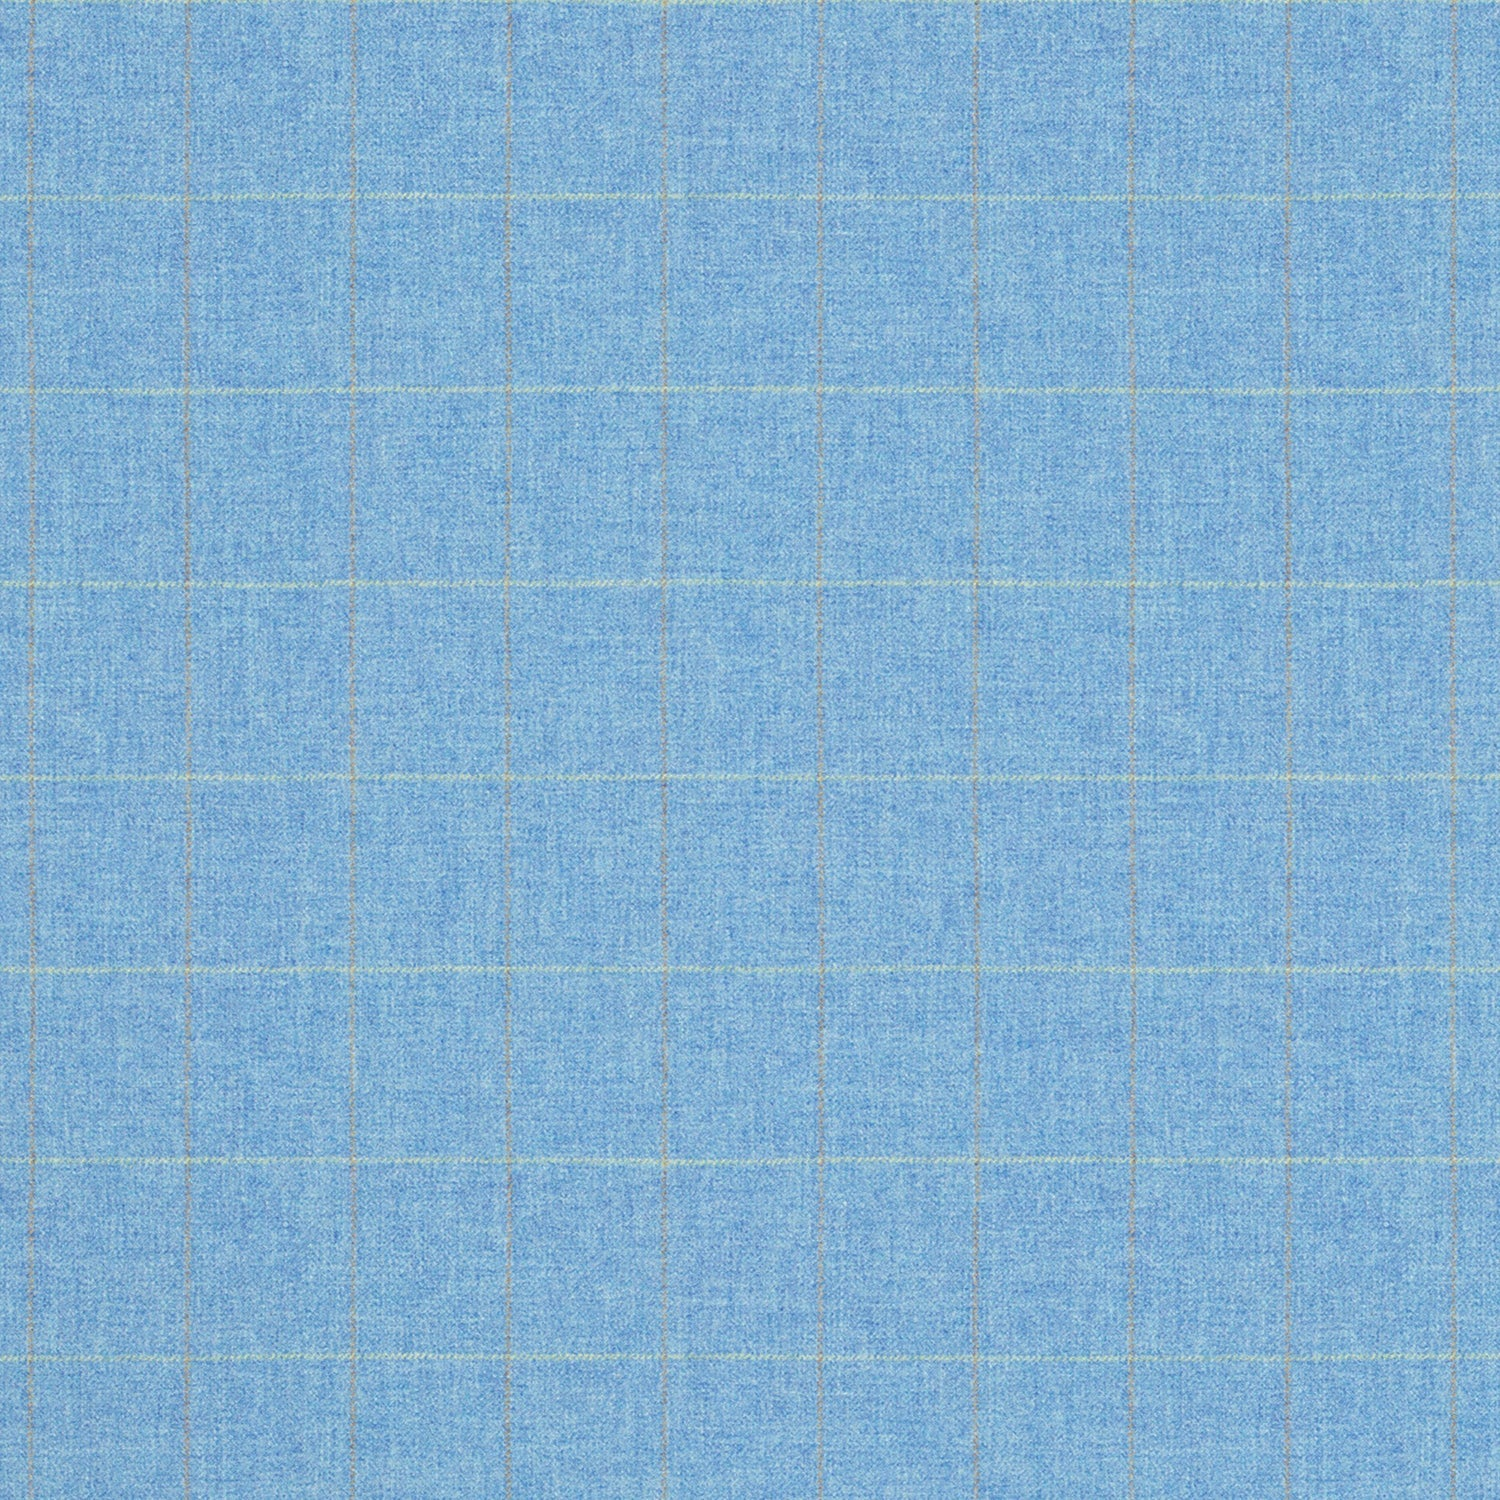 Fabric swatch of a blue Scottish wool windowpane check fabric for curtains and upholstery